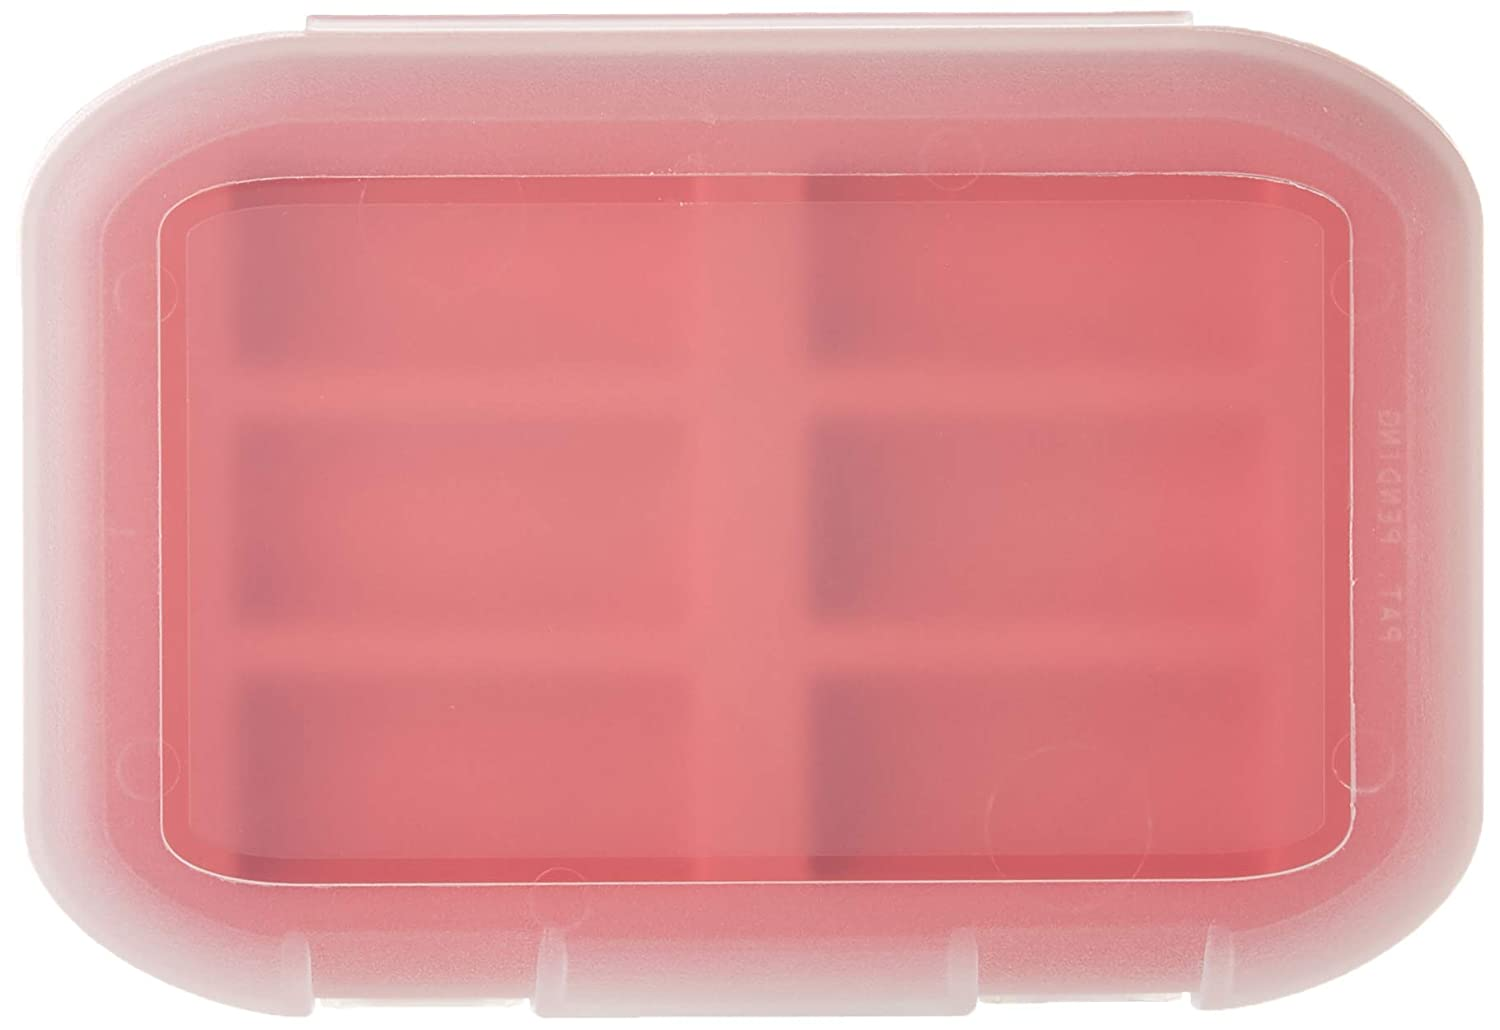 Holds 6 Made in The USA Malamute Rugged CR123 Battery Storage Case Red Traction Feet